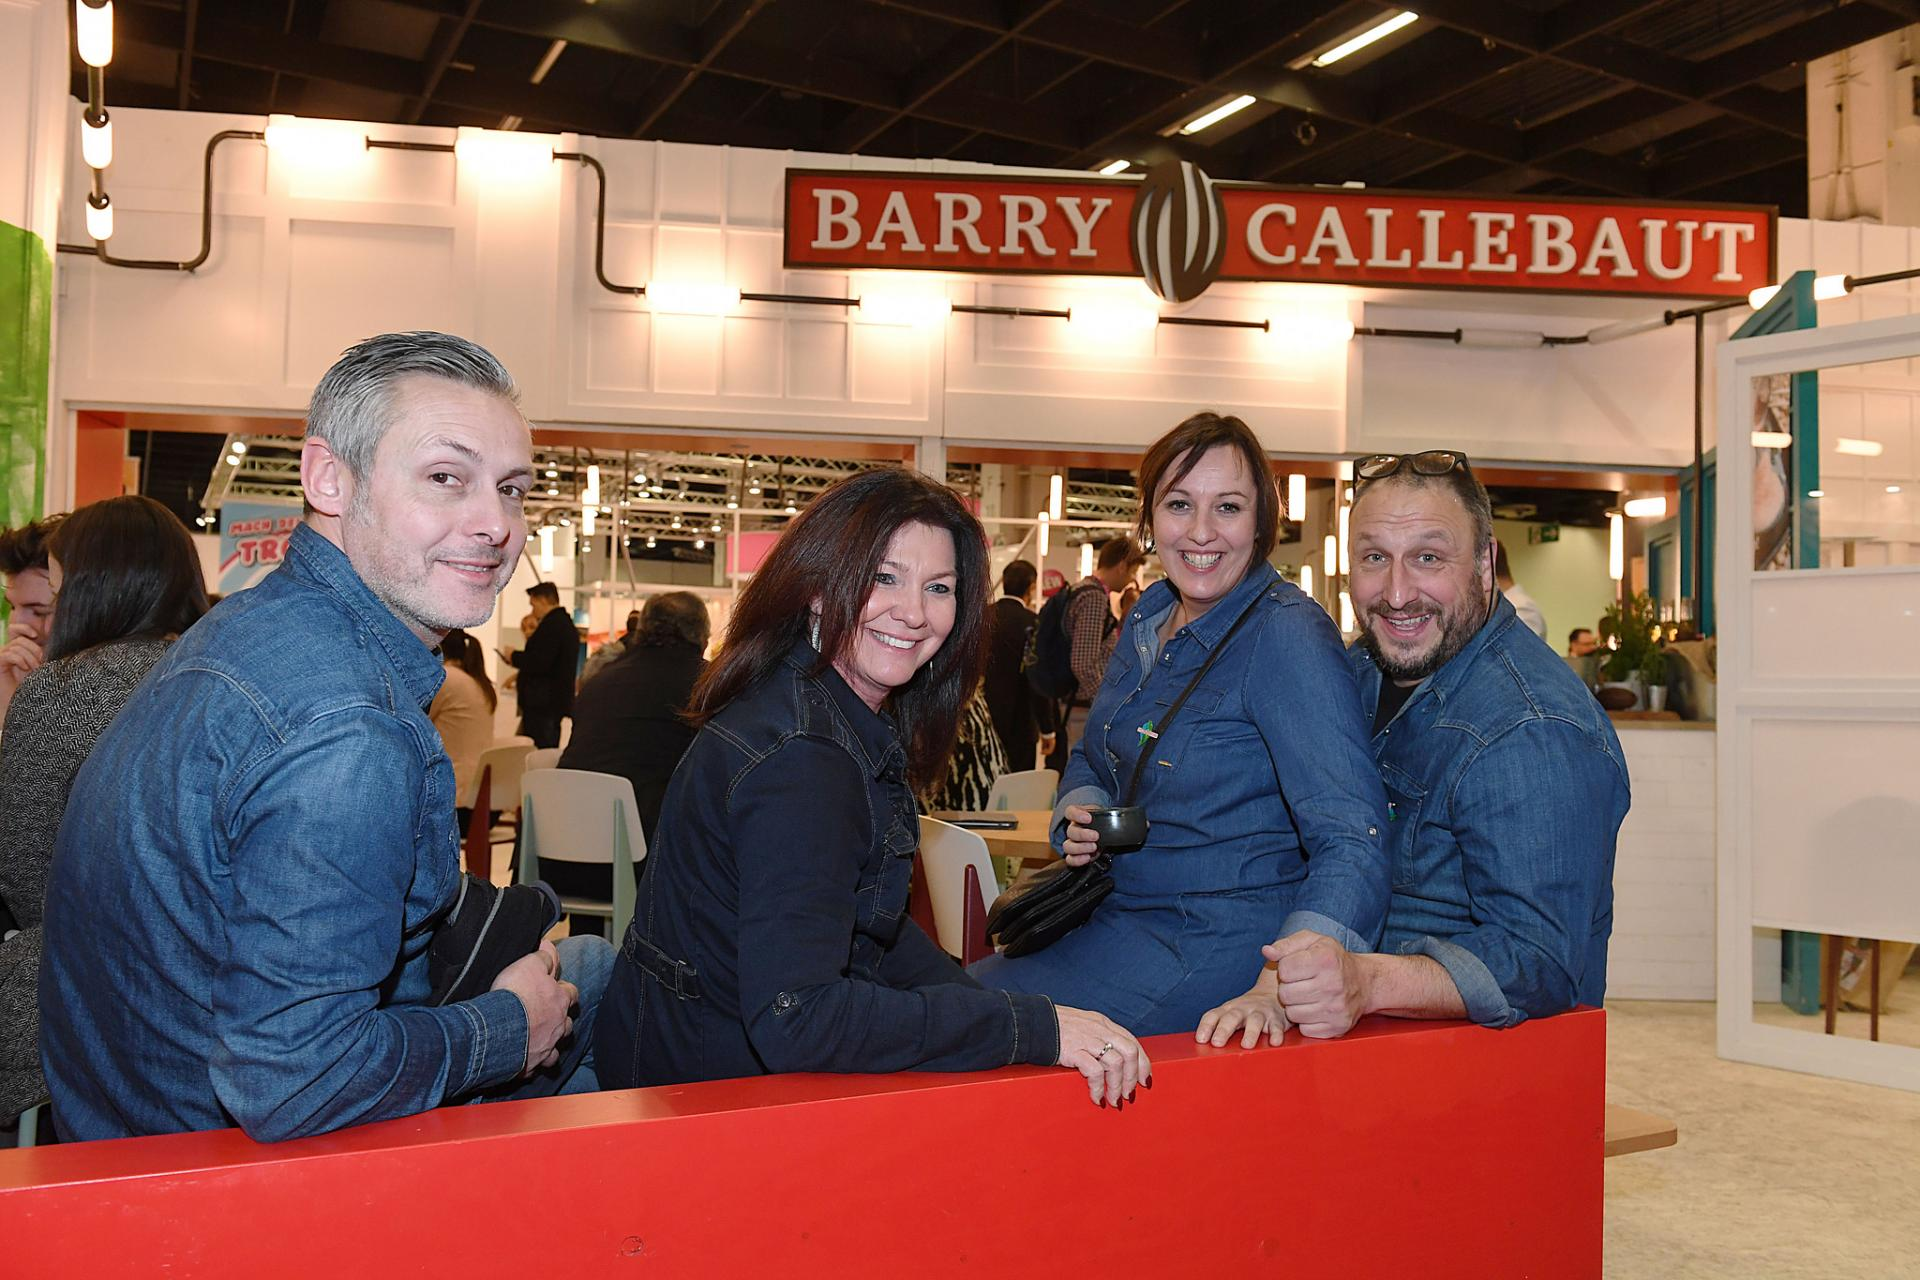 Barry Callebaut employees